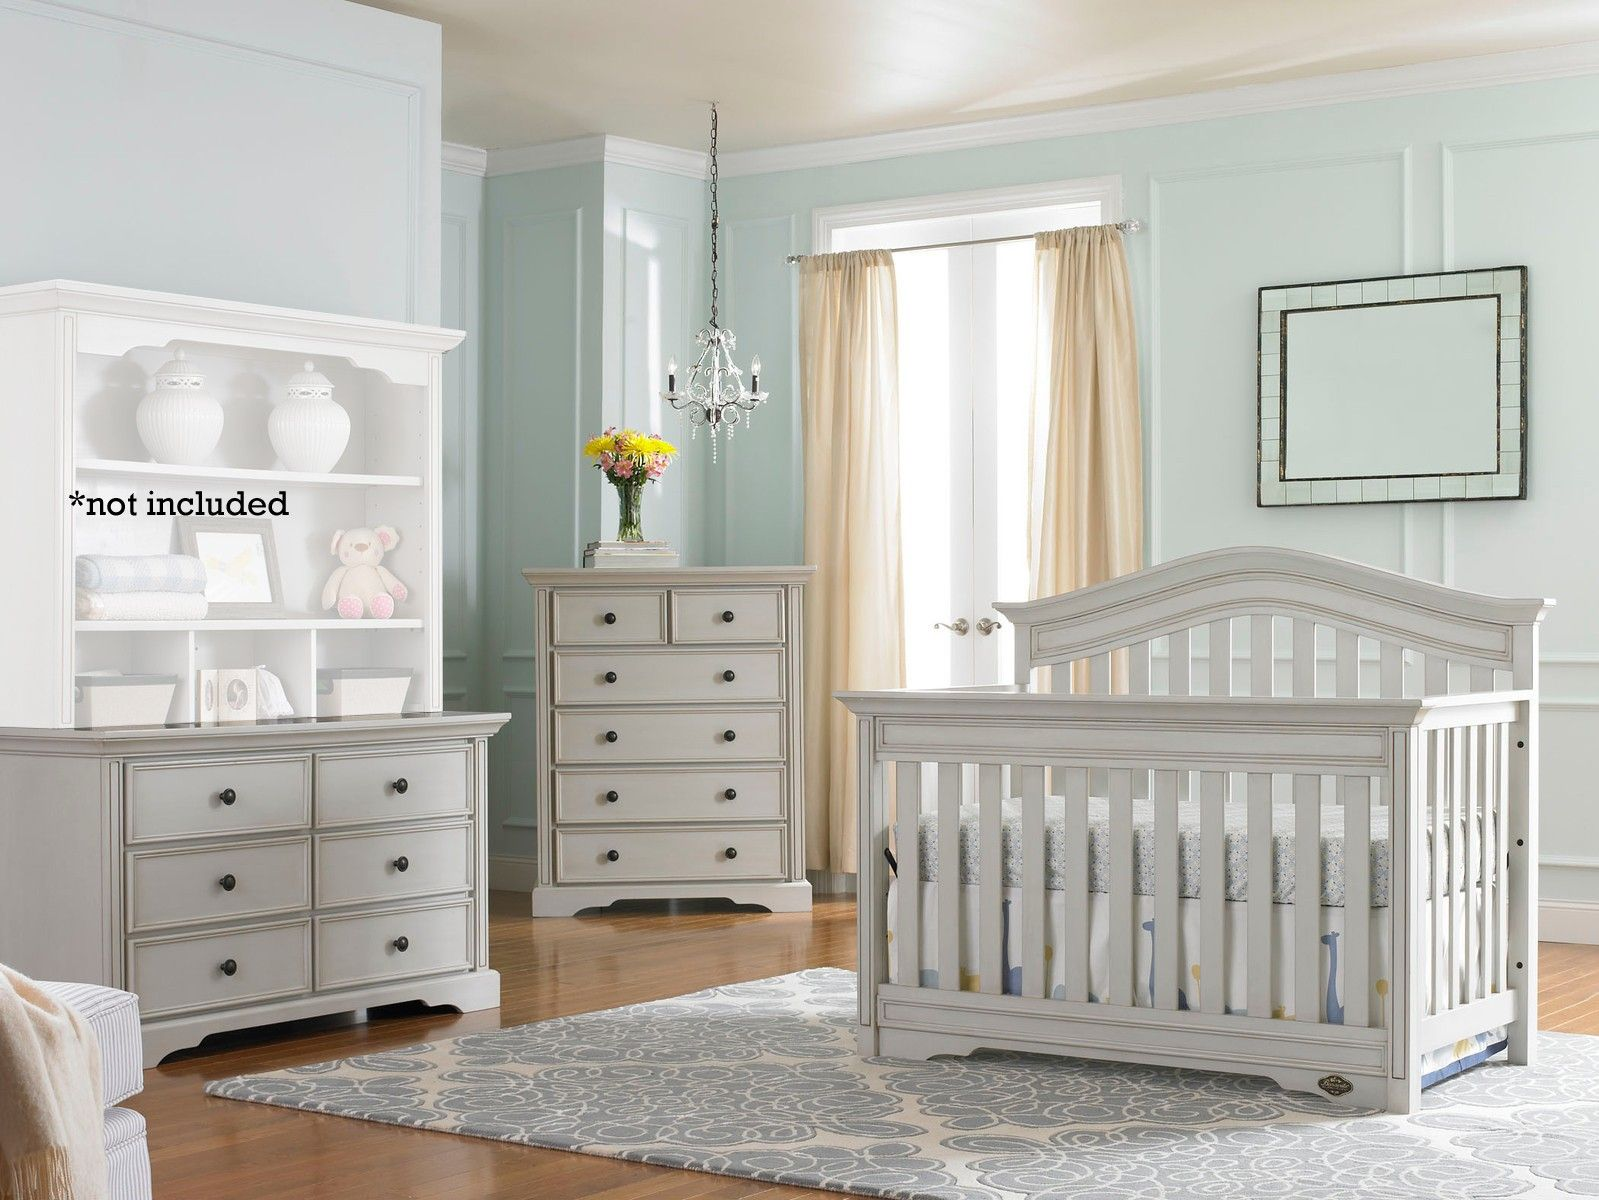 bonavita westfield 3 nursery set in linen gray on 3 Piece Nursery Set id=99397